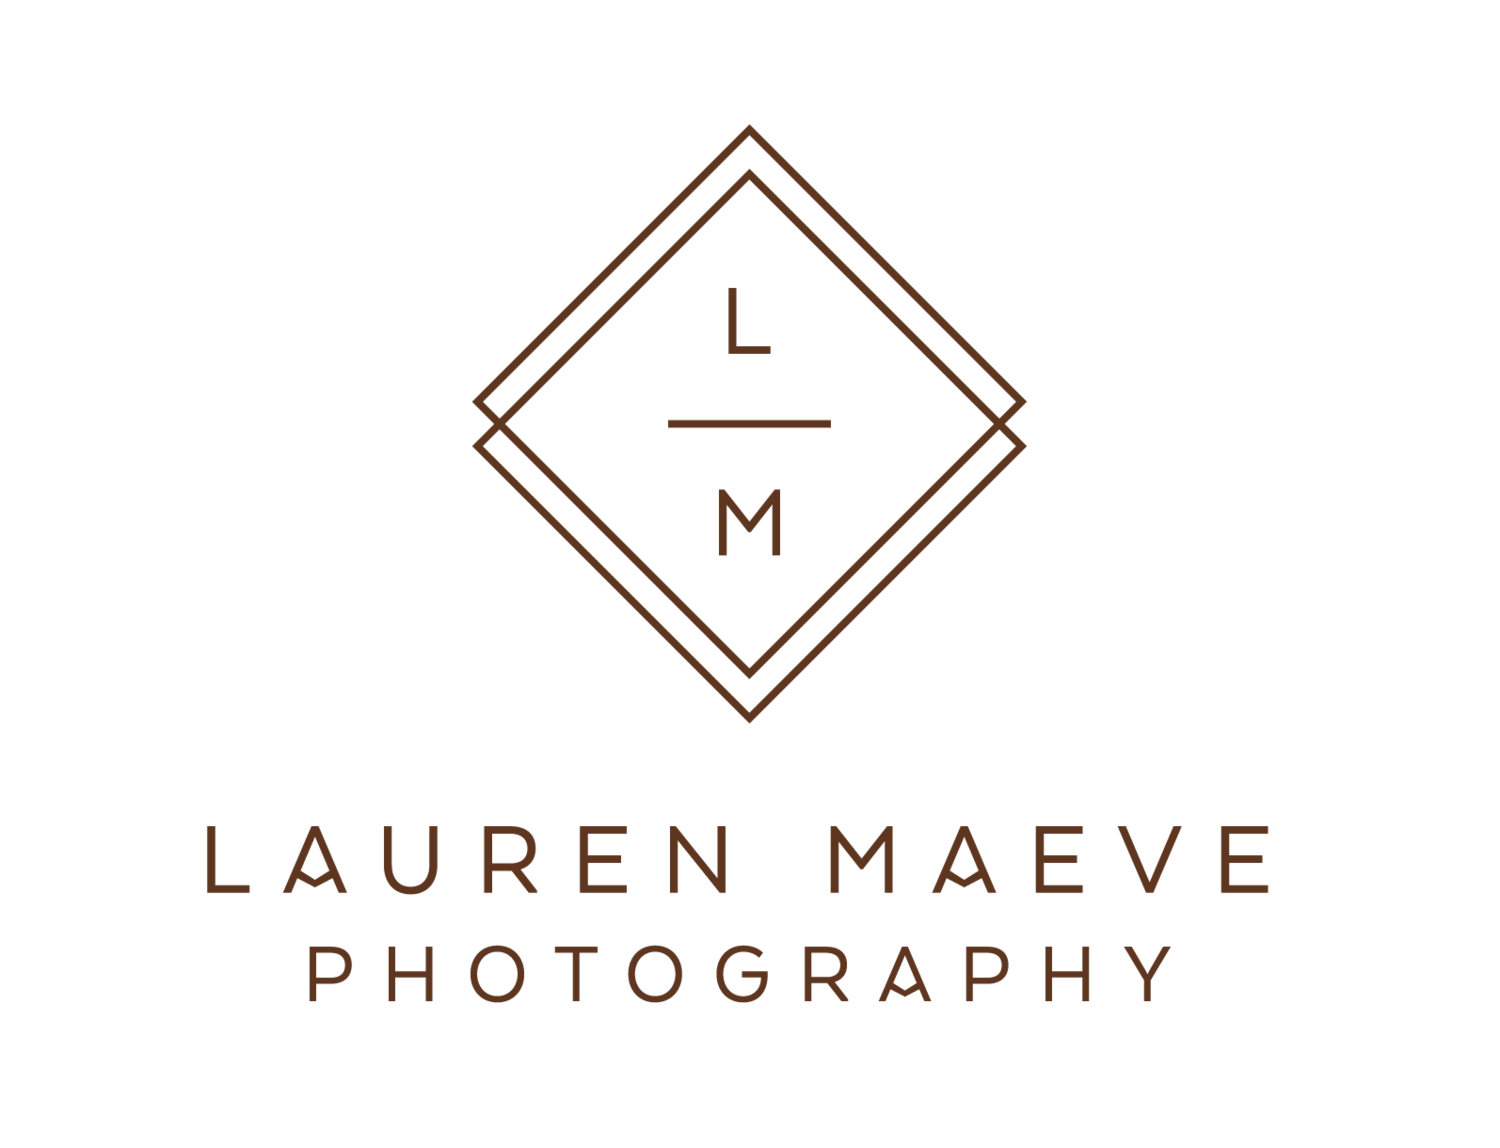 Lauren Maeve Photography